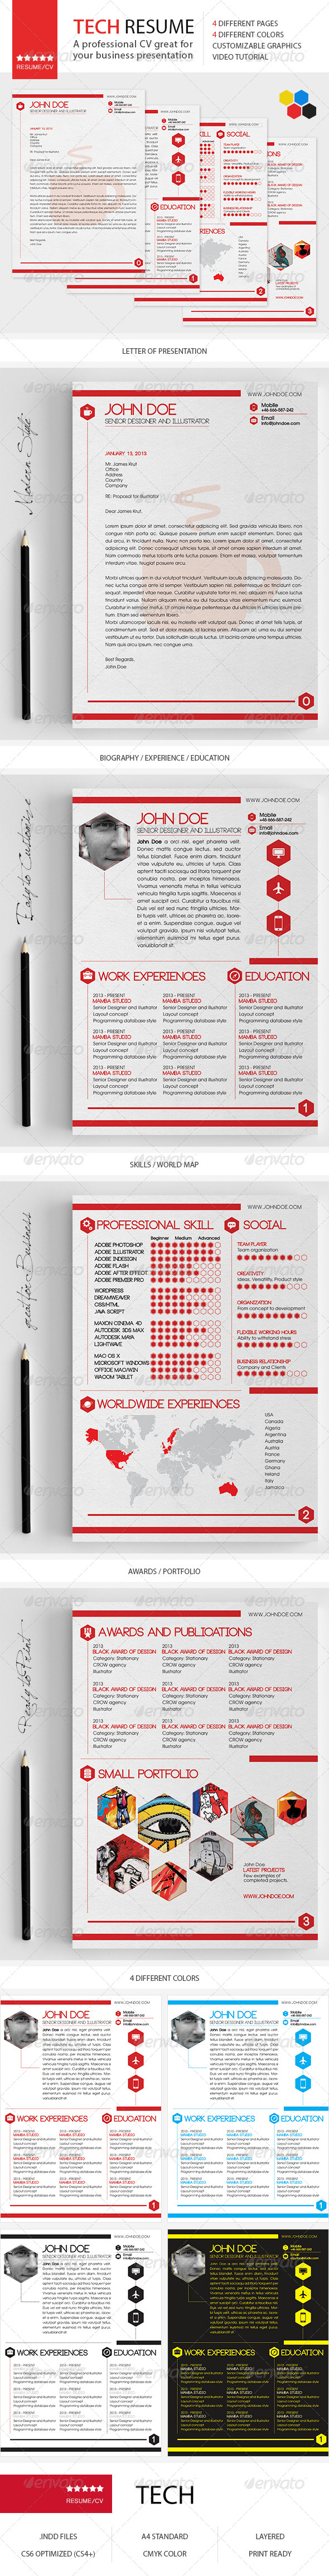 Tech Resume/CV - http://graphicriver.net/item/tech-resumecv/4874020?WT.ac=search_thumb&WT.z_author=alpaaca